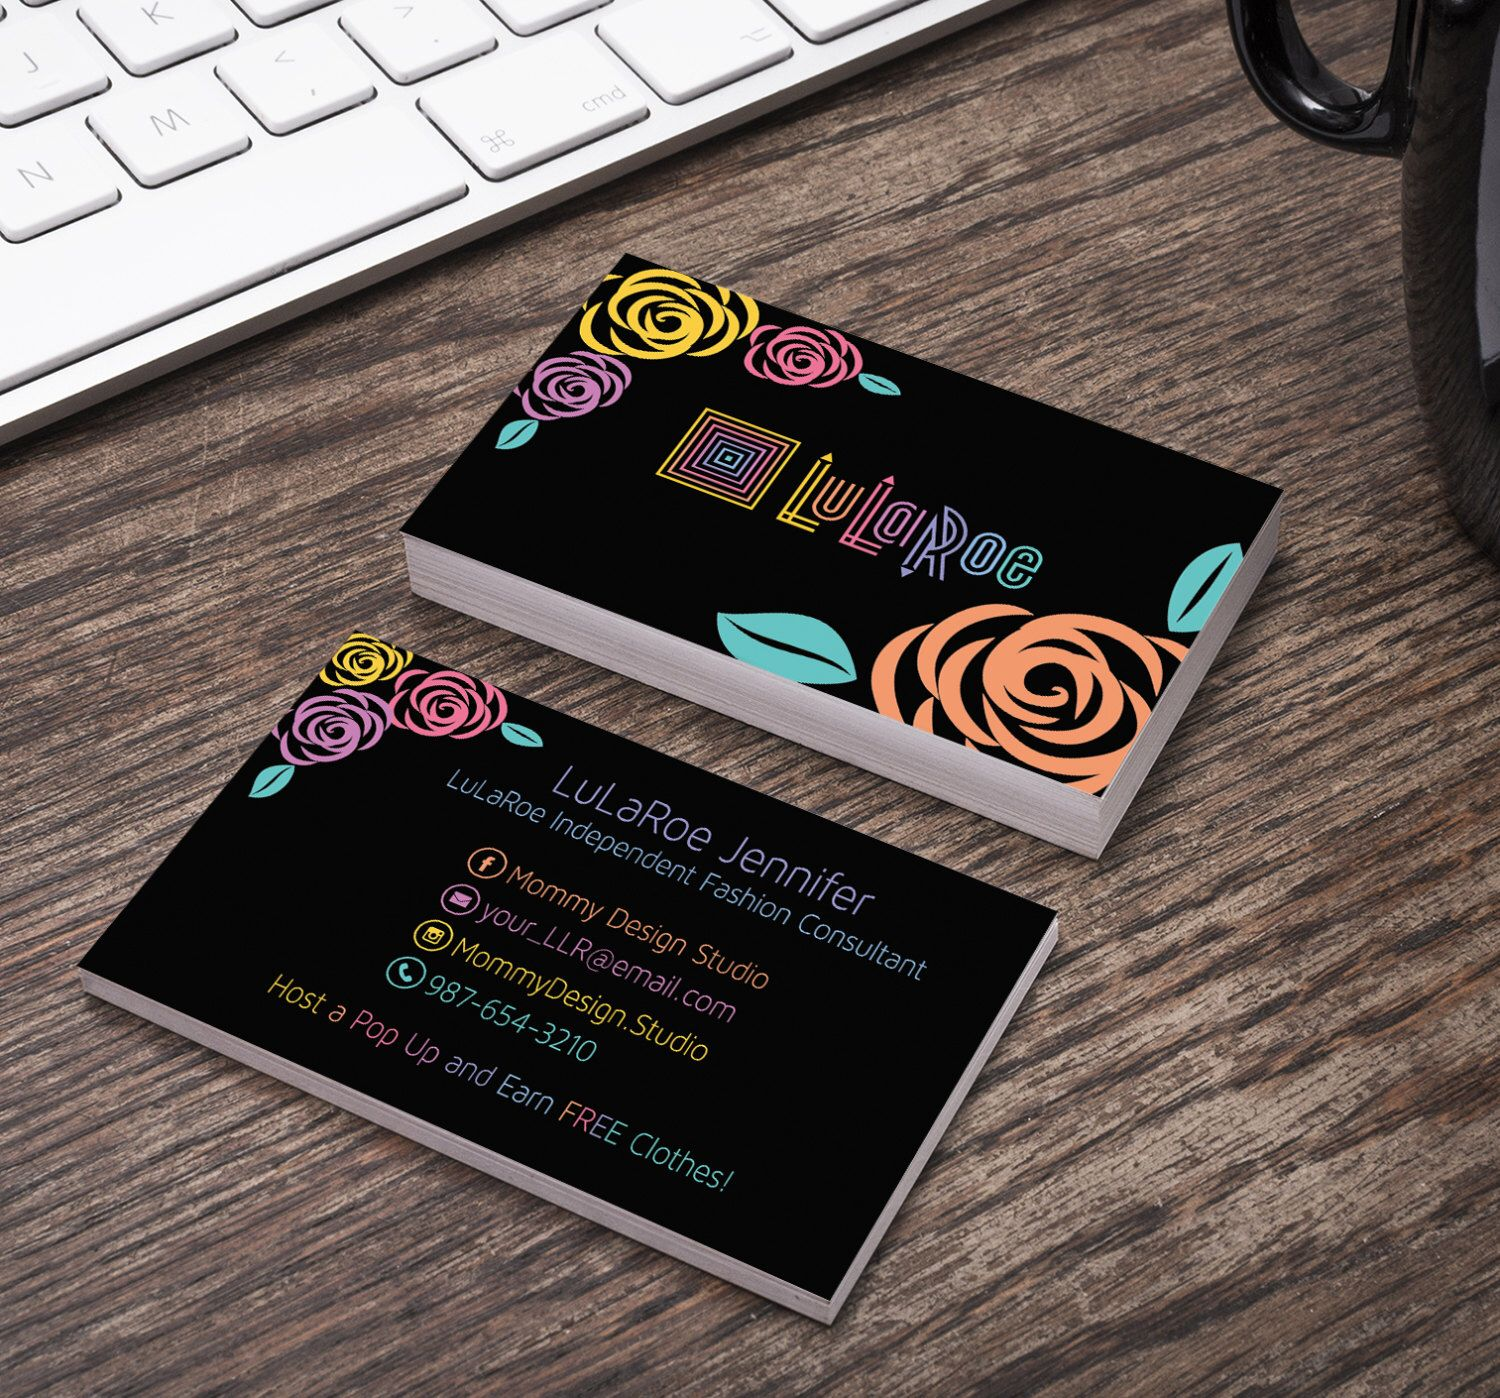 black card with llr colored roses lularoe business card